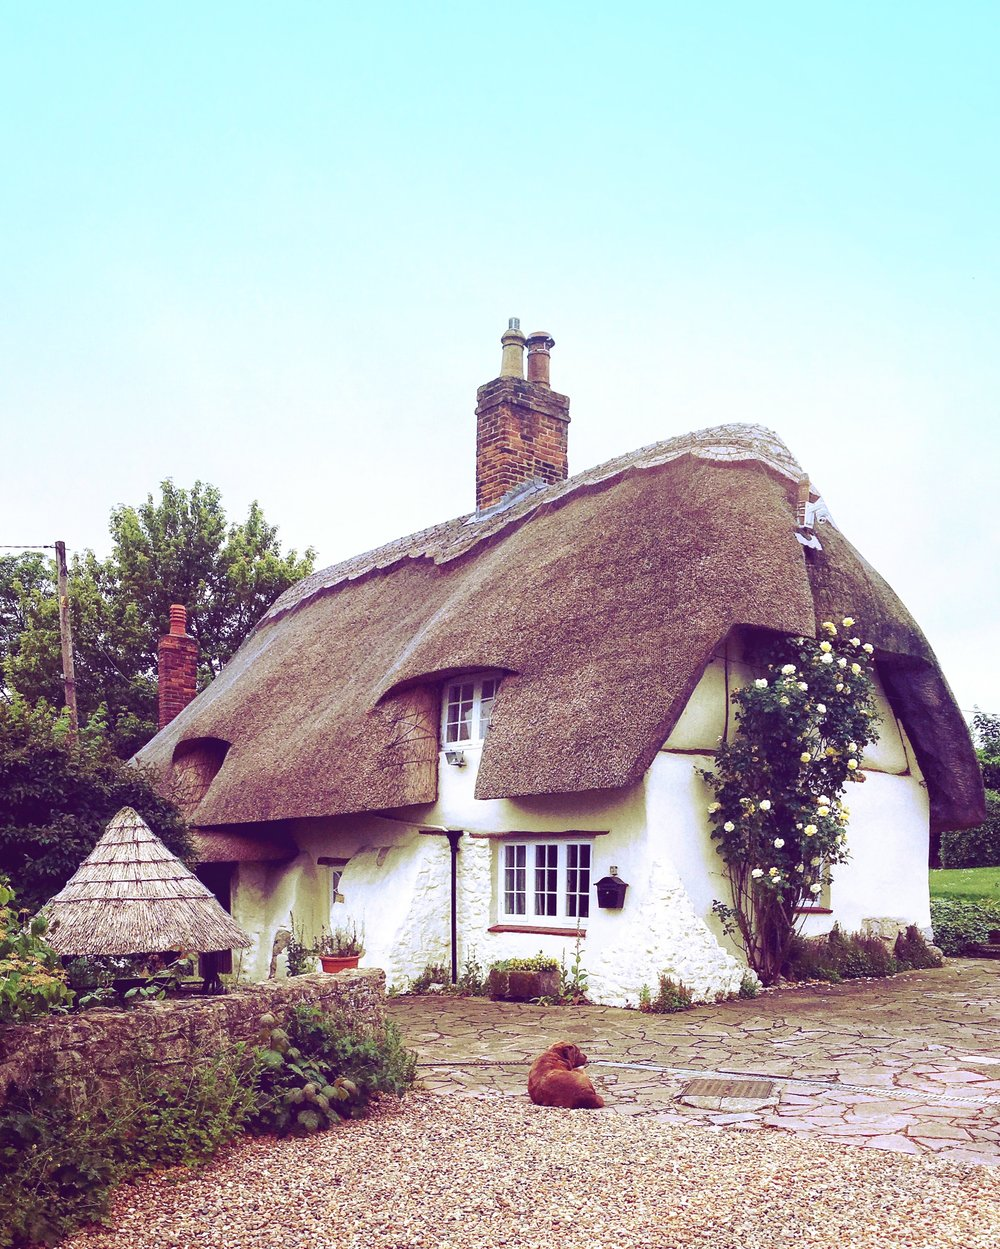 A quaint 17th century thatched cottage near Waddesdon Manor in Buckinghamshire. © Eileen Hsieh / Follow That Bug